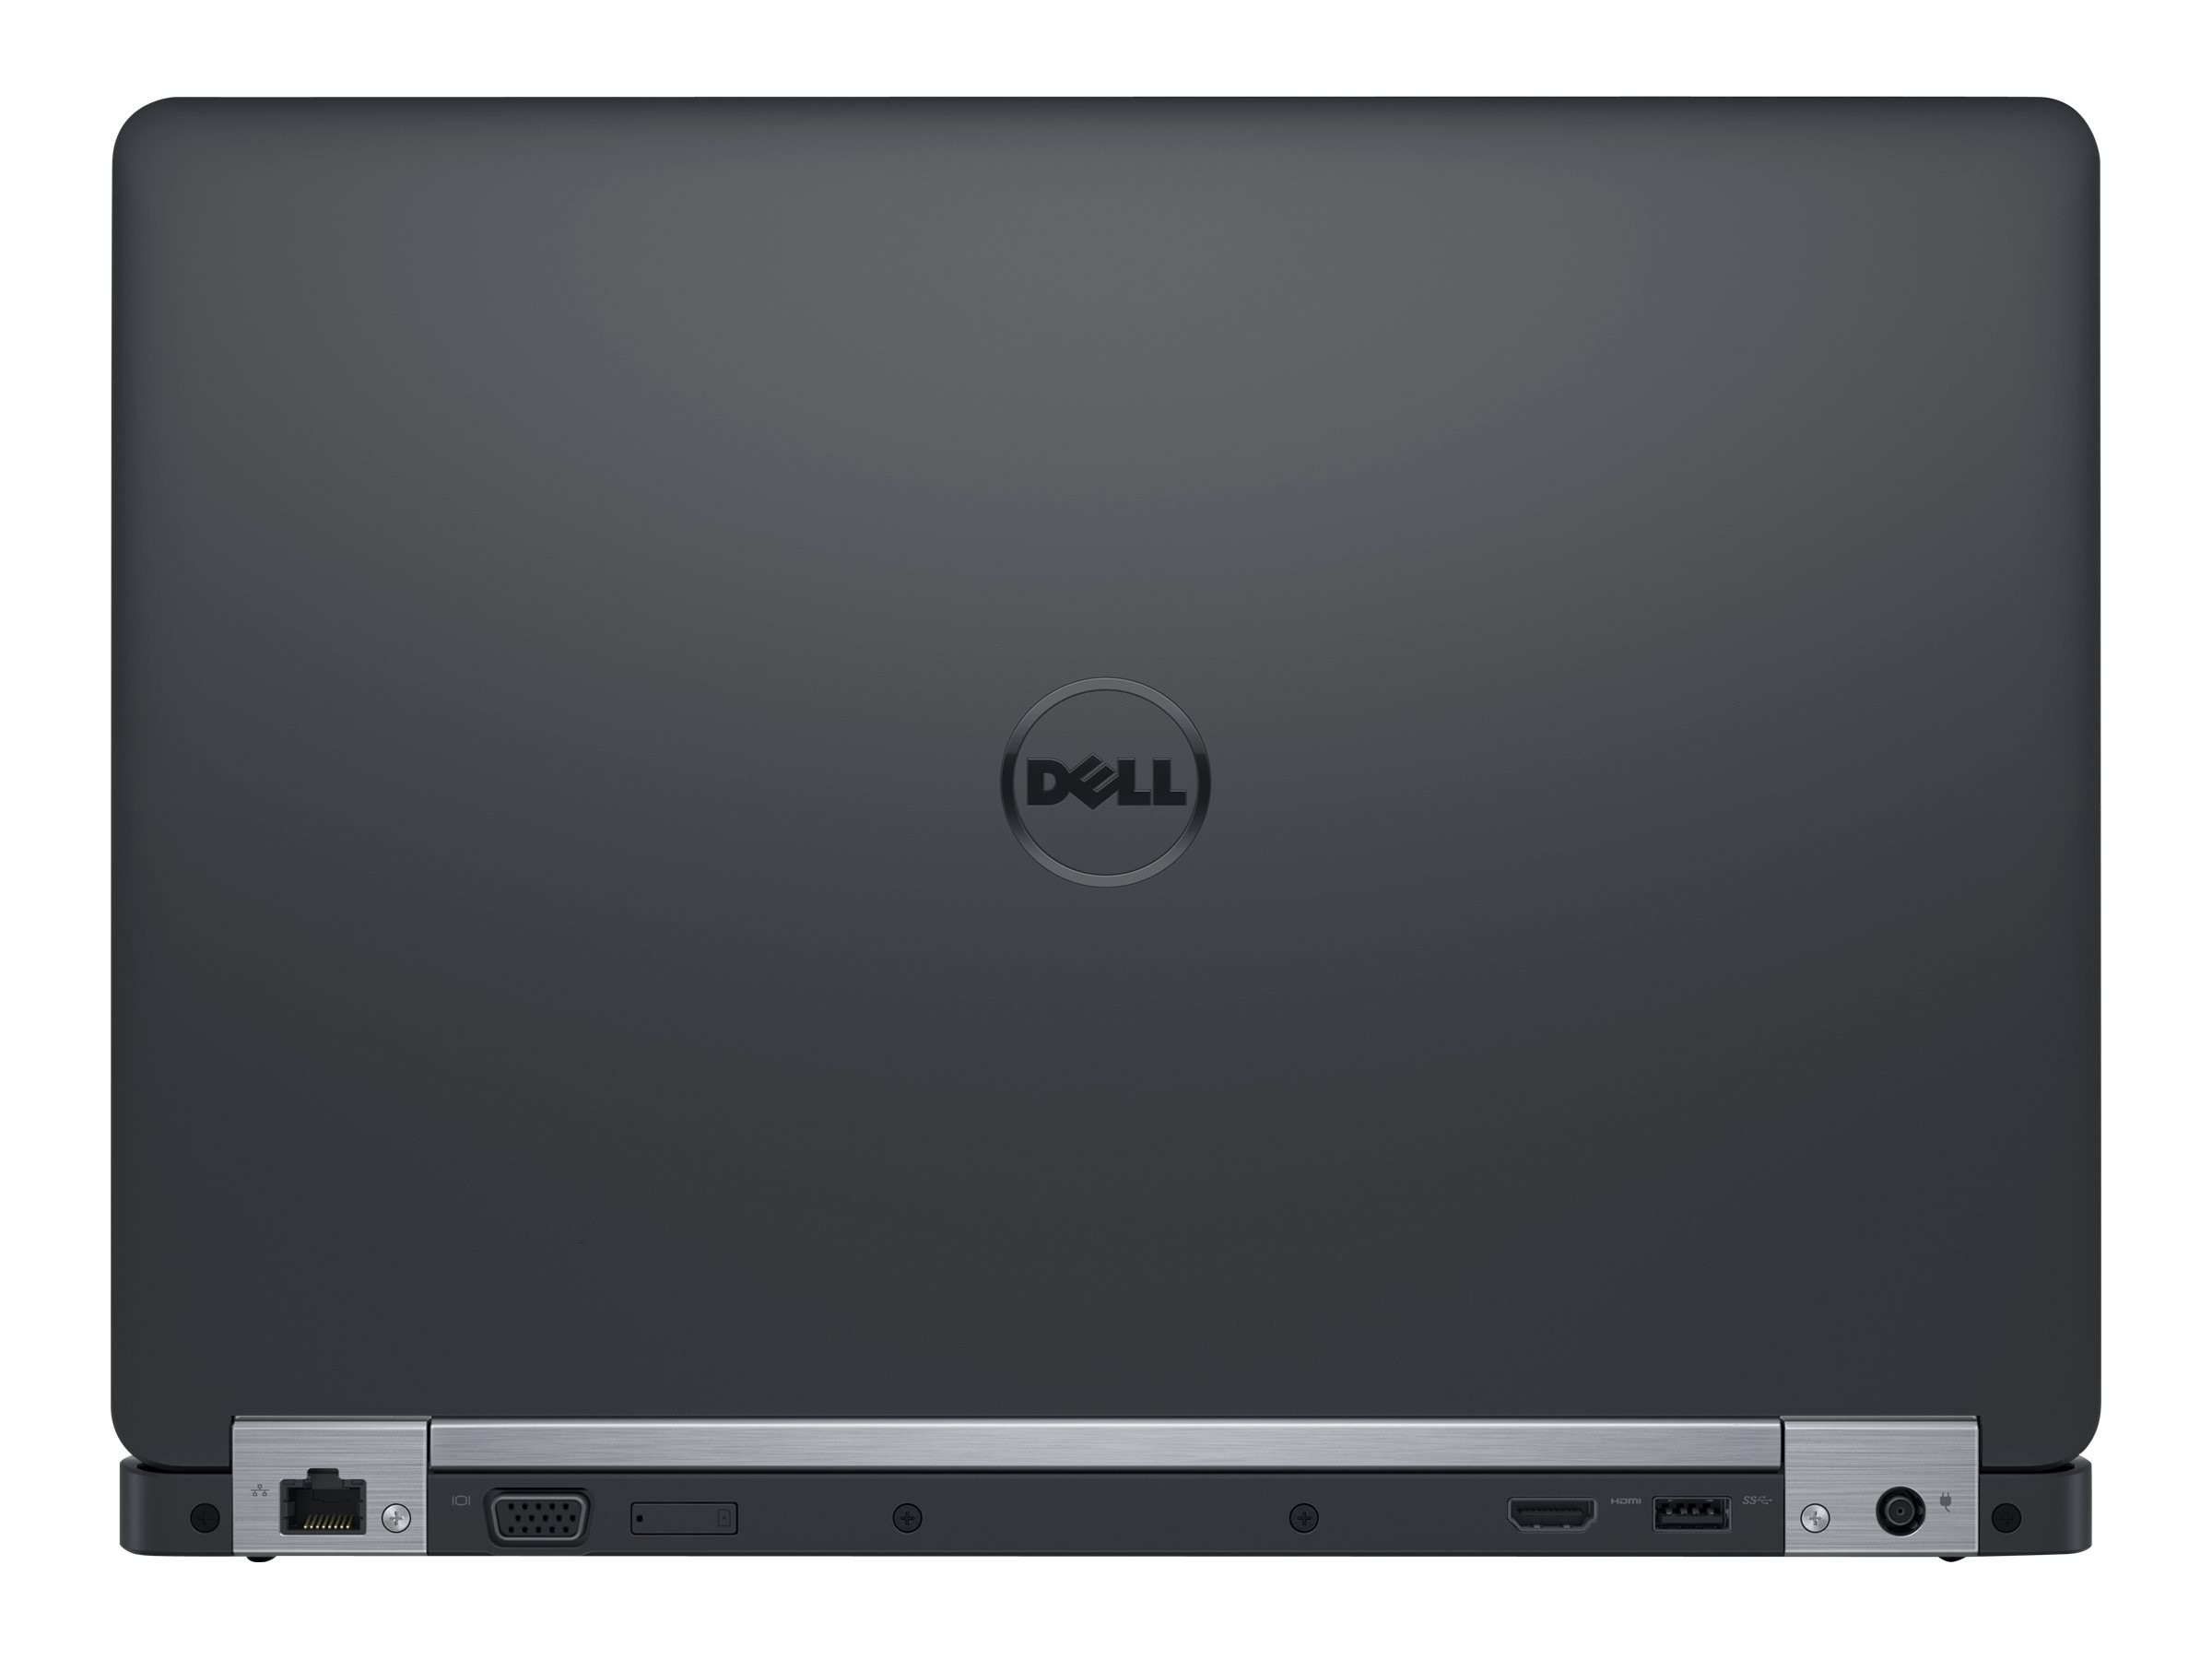 Dell Latitude E5470U Core i5-6300U 2.4GHz 8GB 500GB ac BT WC 4C 14 FHD W10P64, XTYK1